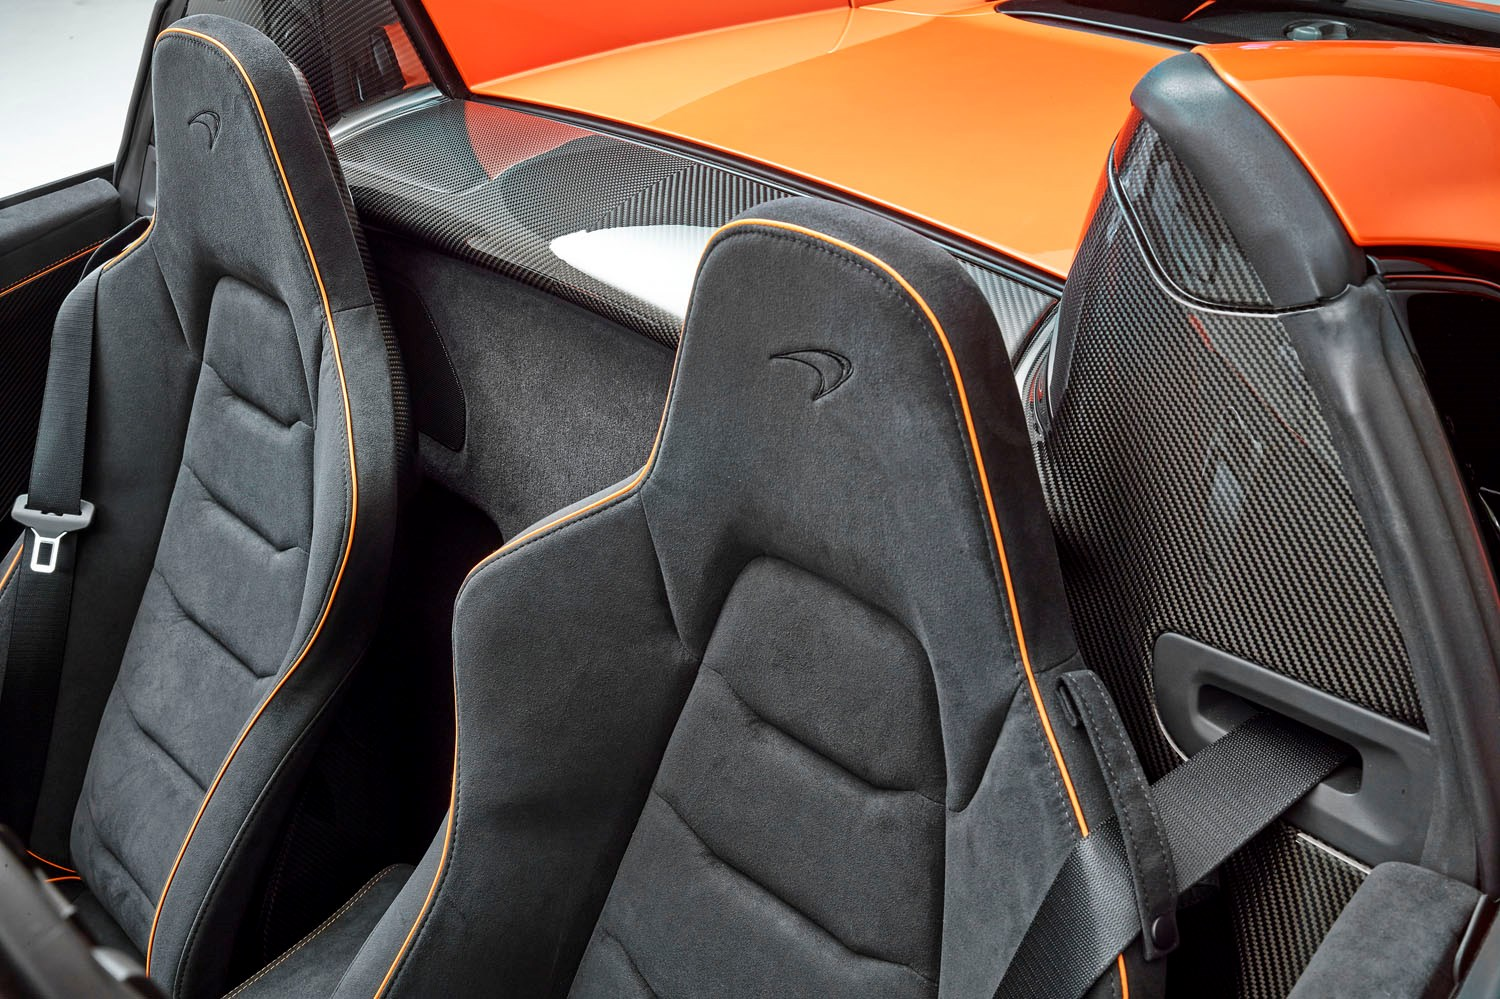 Top Rated Safety Car Seats